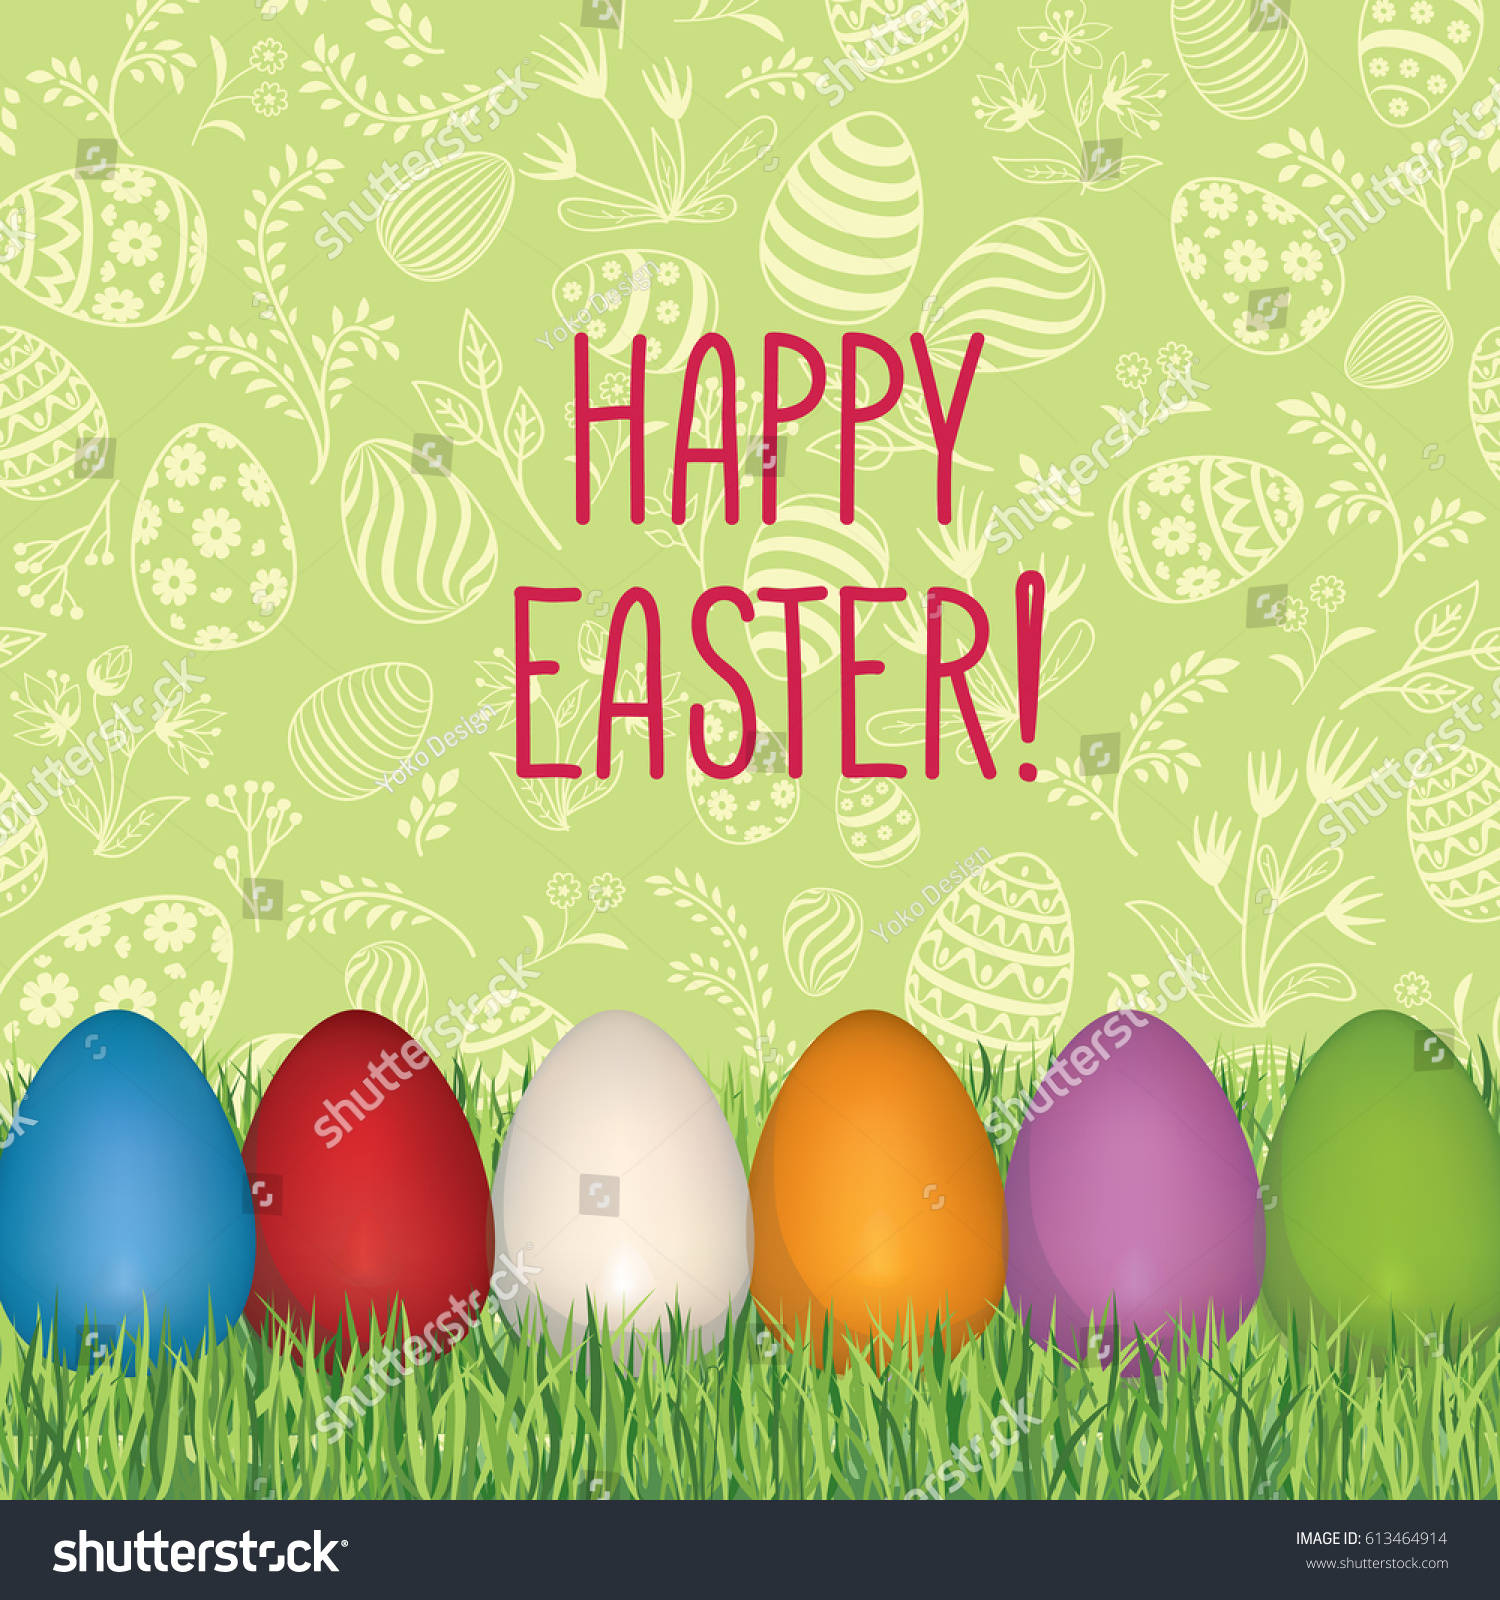 Happy Easter Greeting Card Easter Holiday Stock Vector 613464914